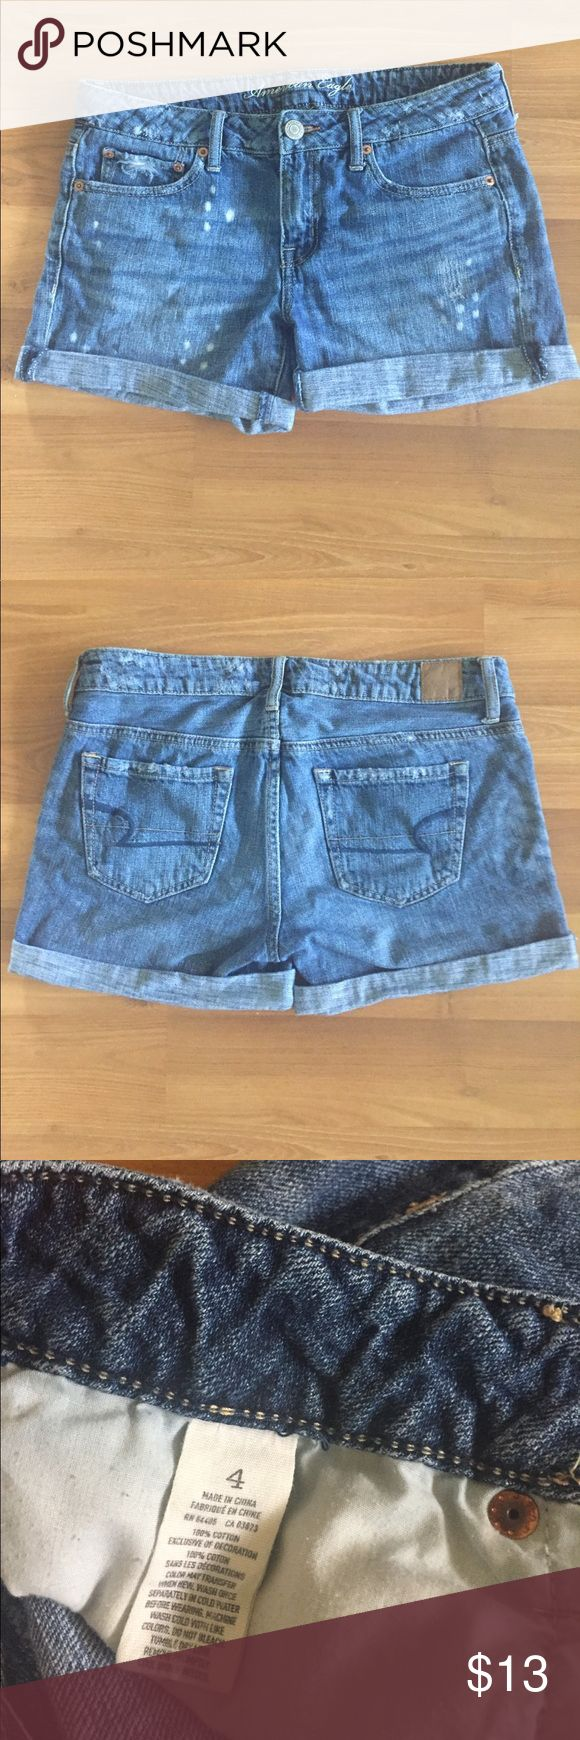 """American Eagle Shorts American Eagle Distressed Cuffed Denim shorts medium wash Size 4 with about a 3"""" inseam and 12"""" length. These don't fit me so I can't model them. Measurements in photos American Eagle Outfitters Shorts Jean Shorts"""